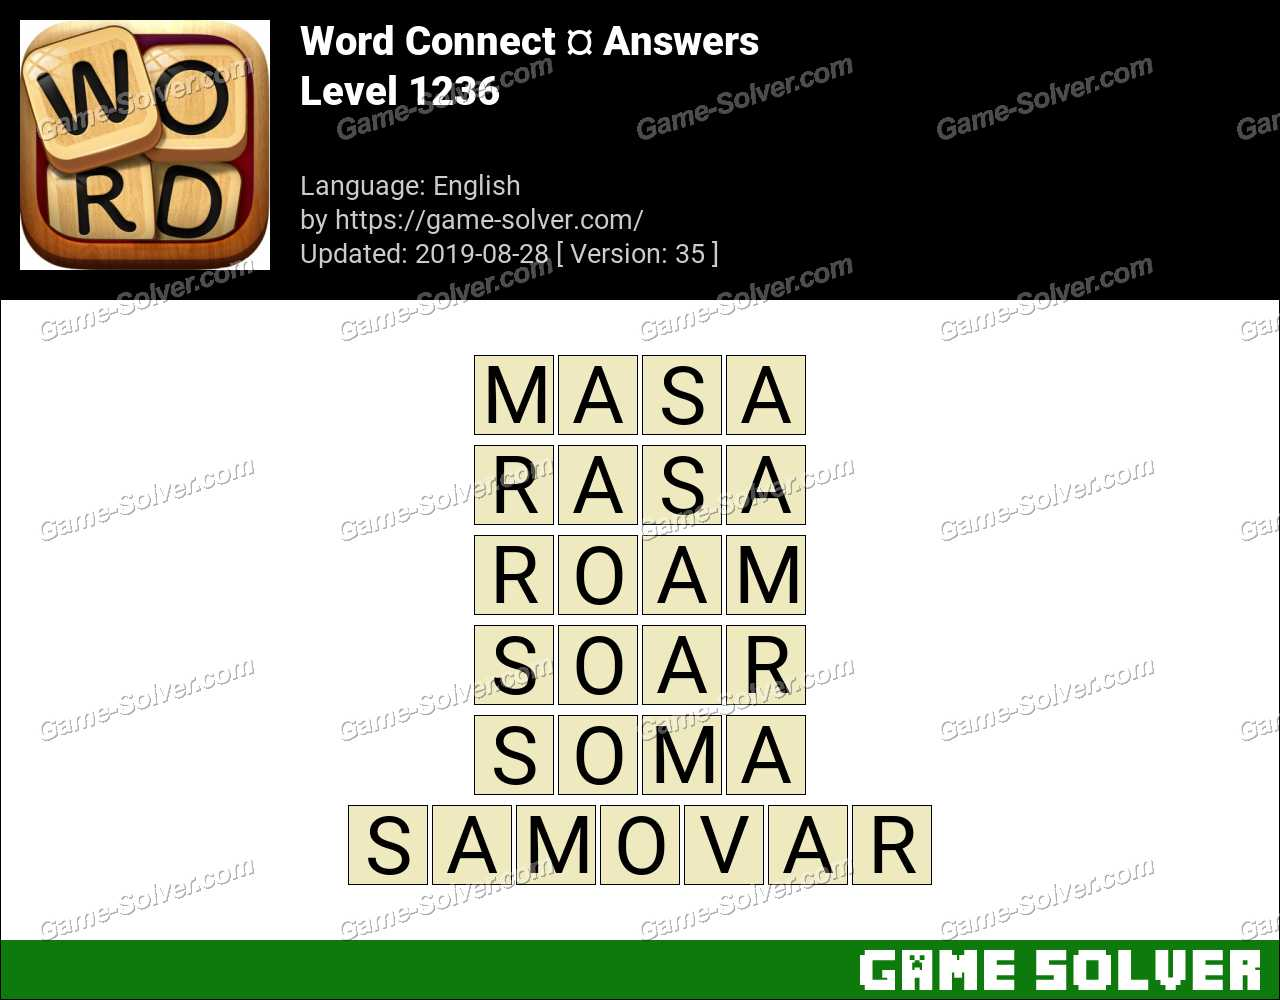 Word Connect Level 1236 Answers